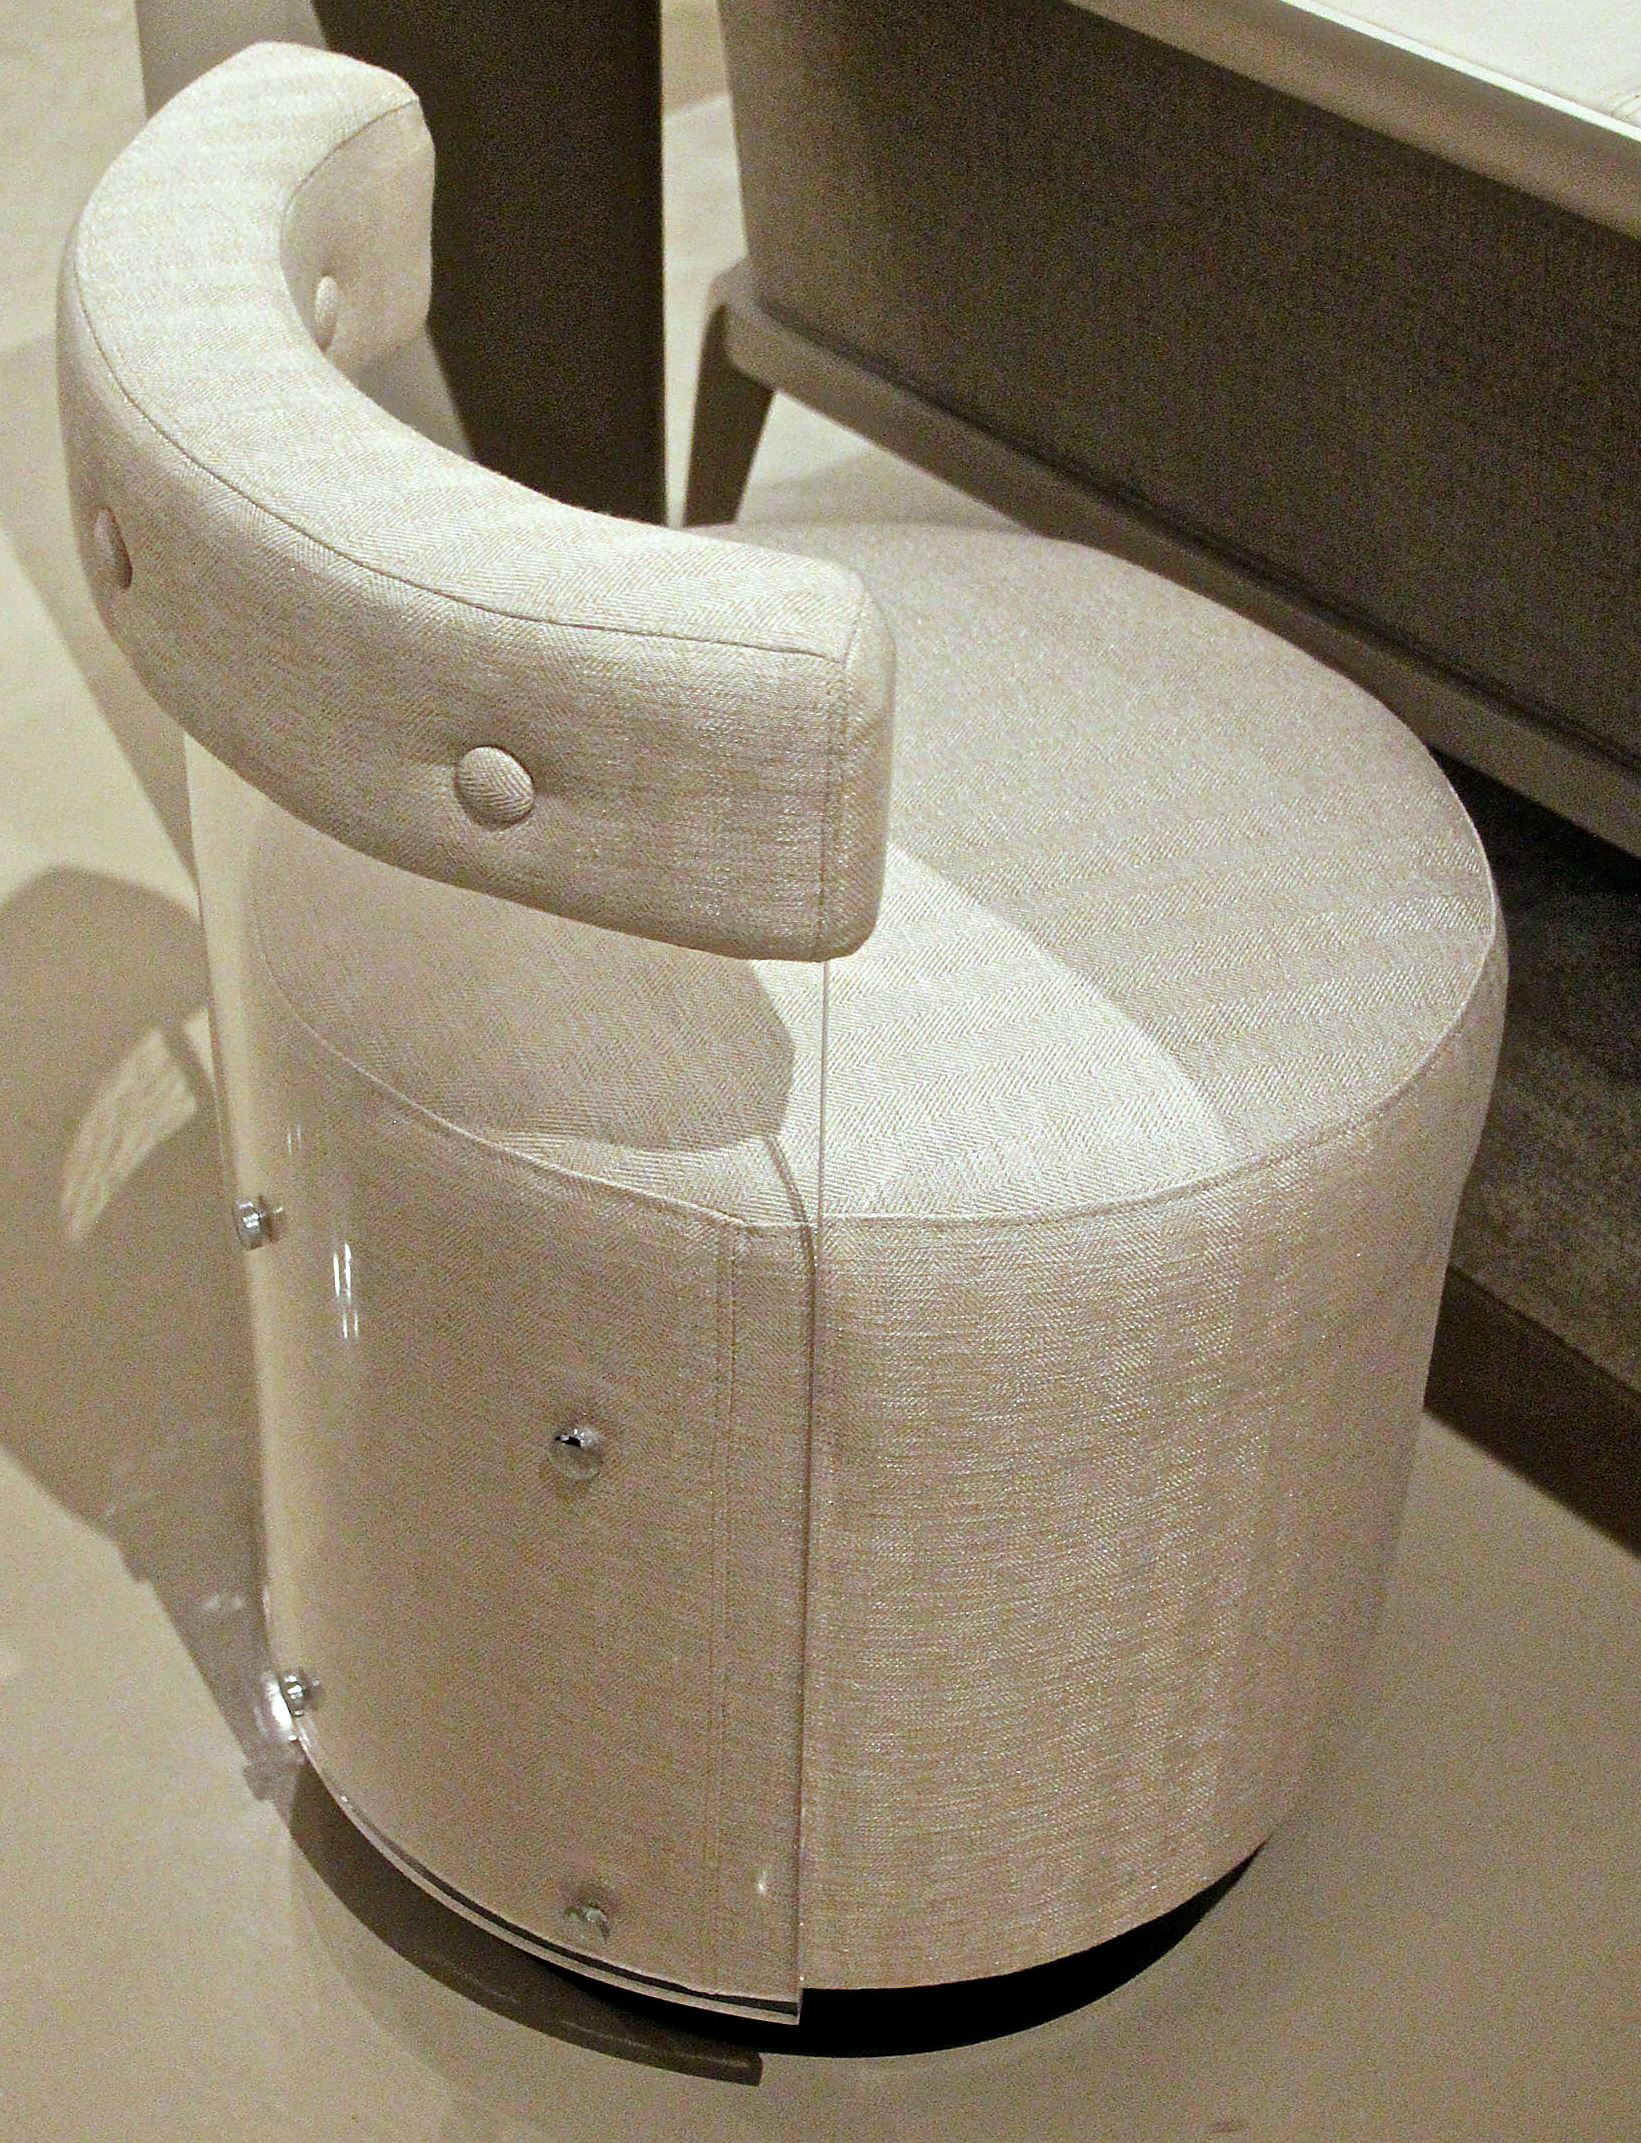 See through furniture is a clear favorite with designers